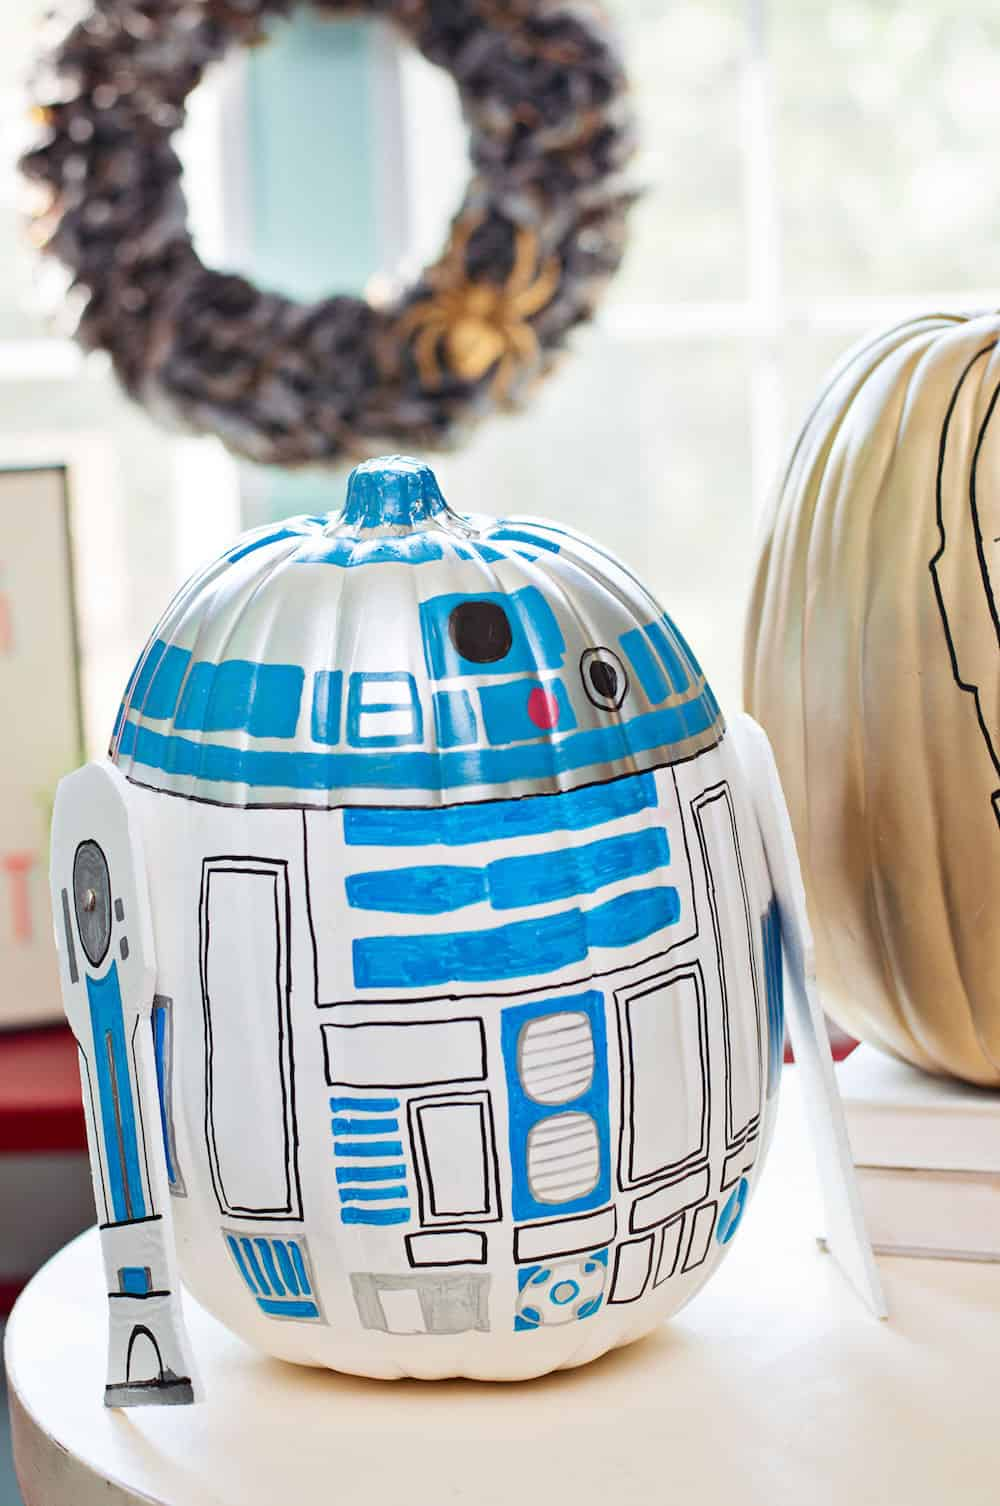 R2D2 and C3PO Star Wars Pumpkins  DIY Candy